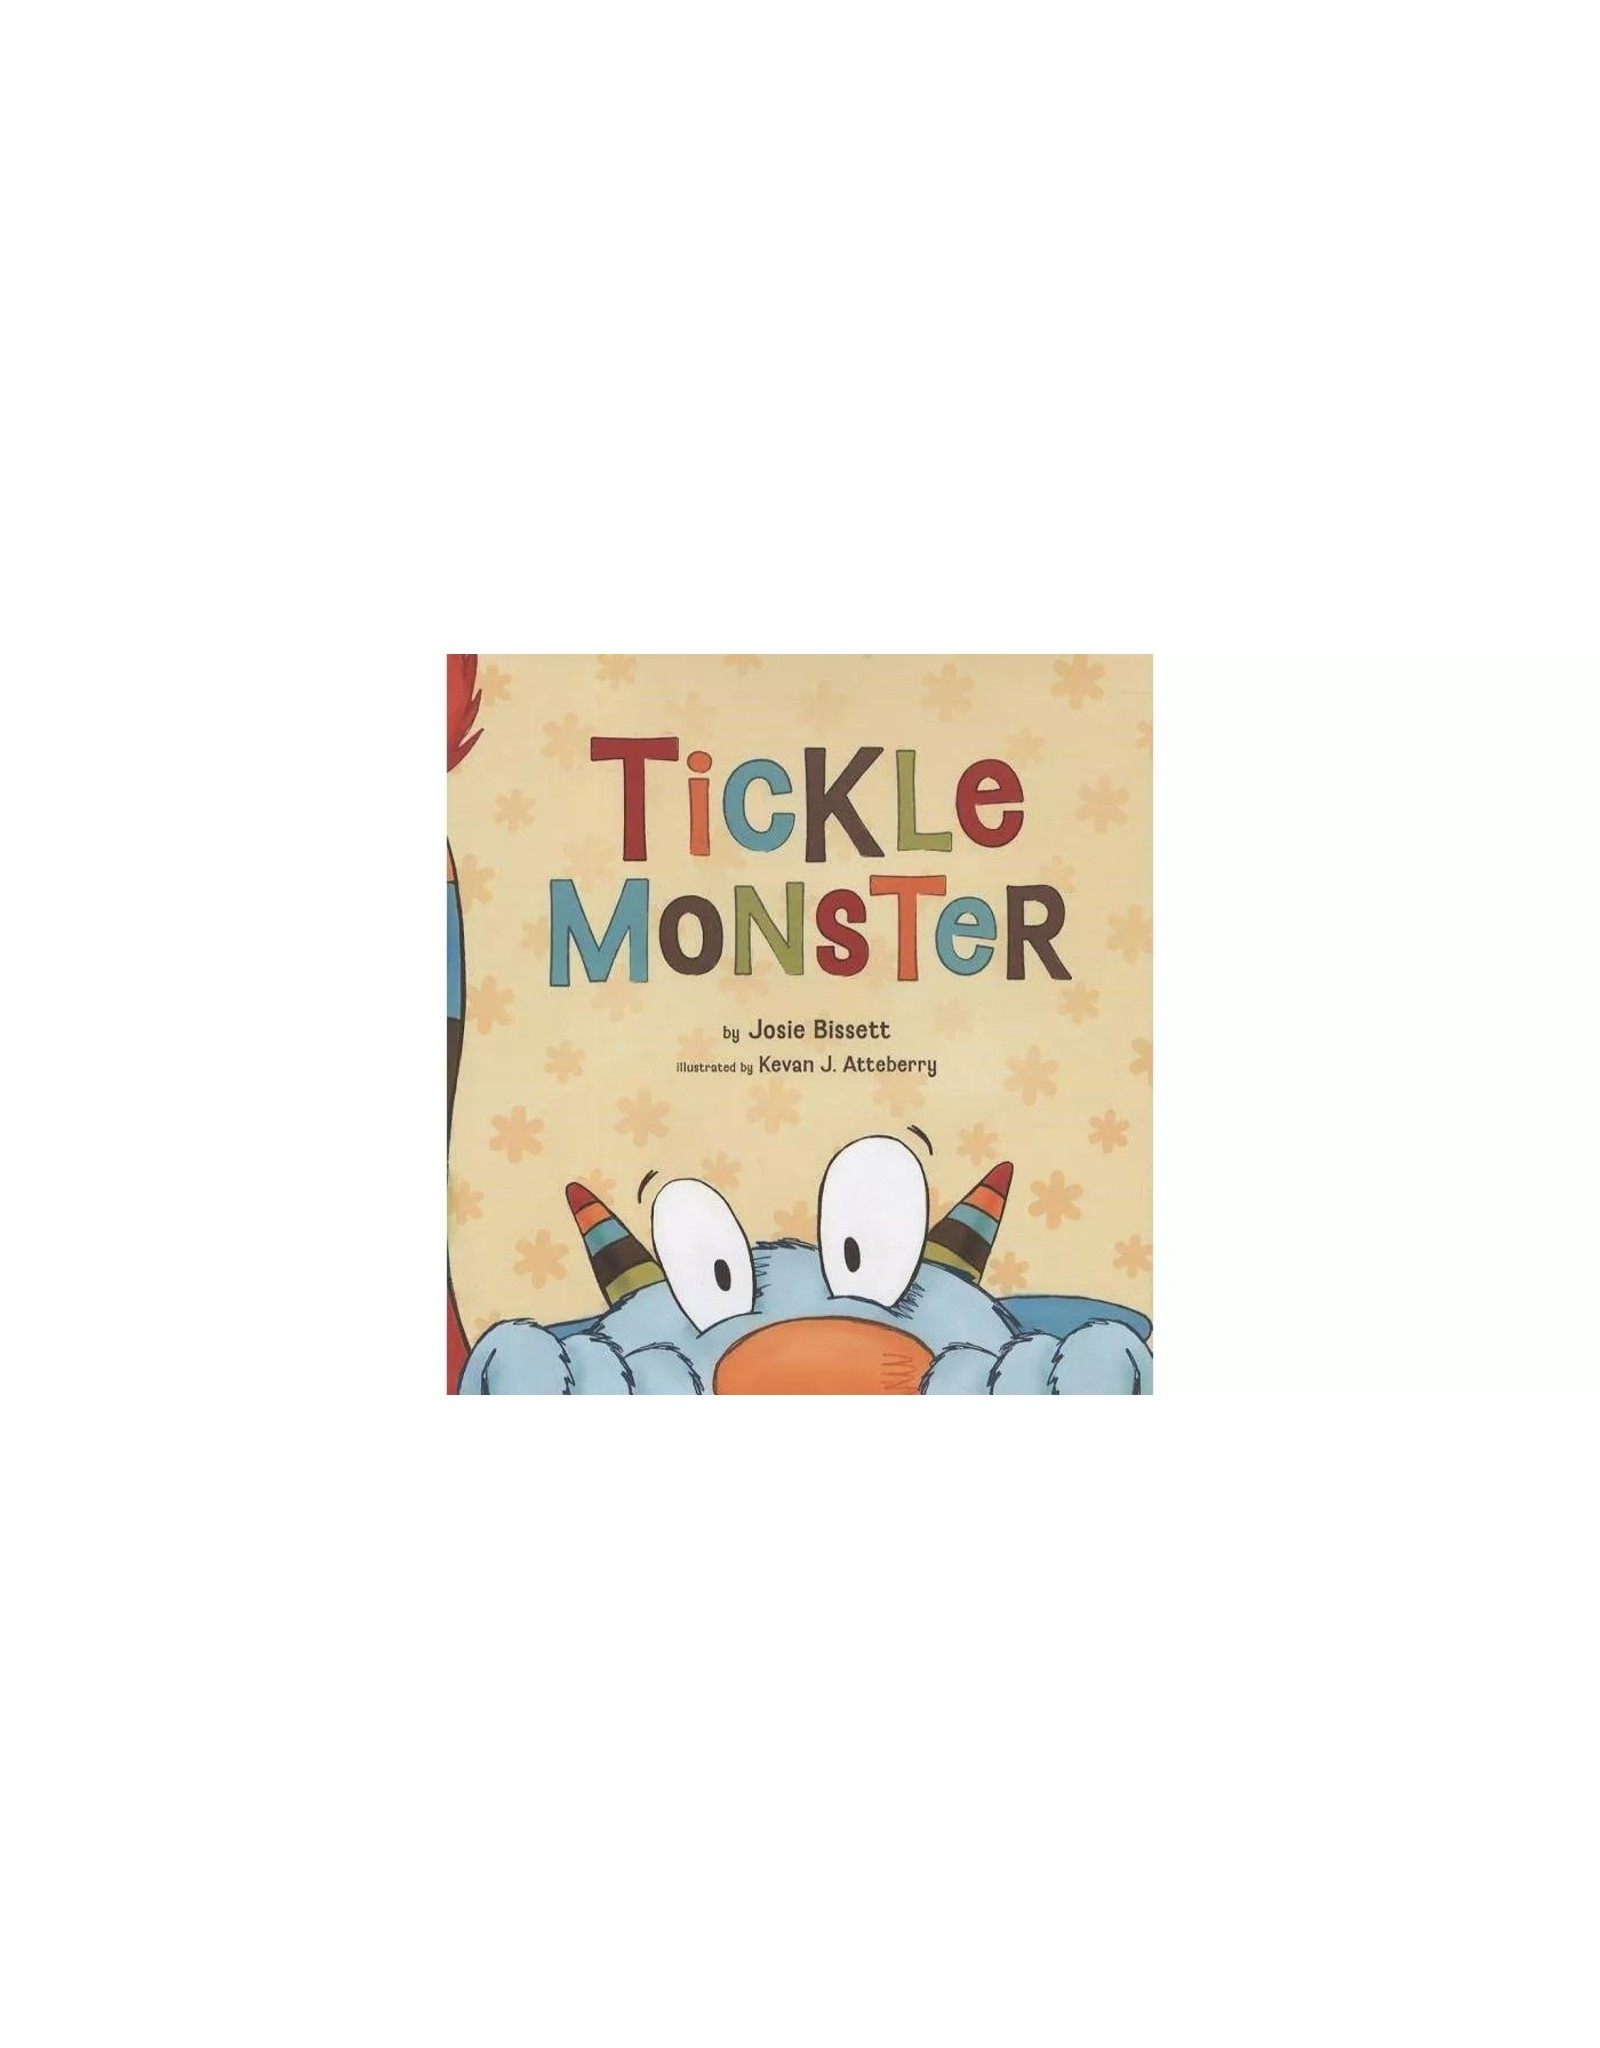 Compendium Tickle Monster Hardcover Book